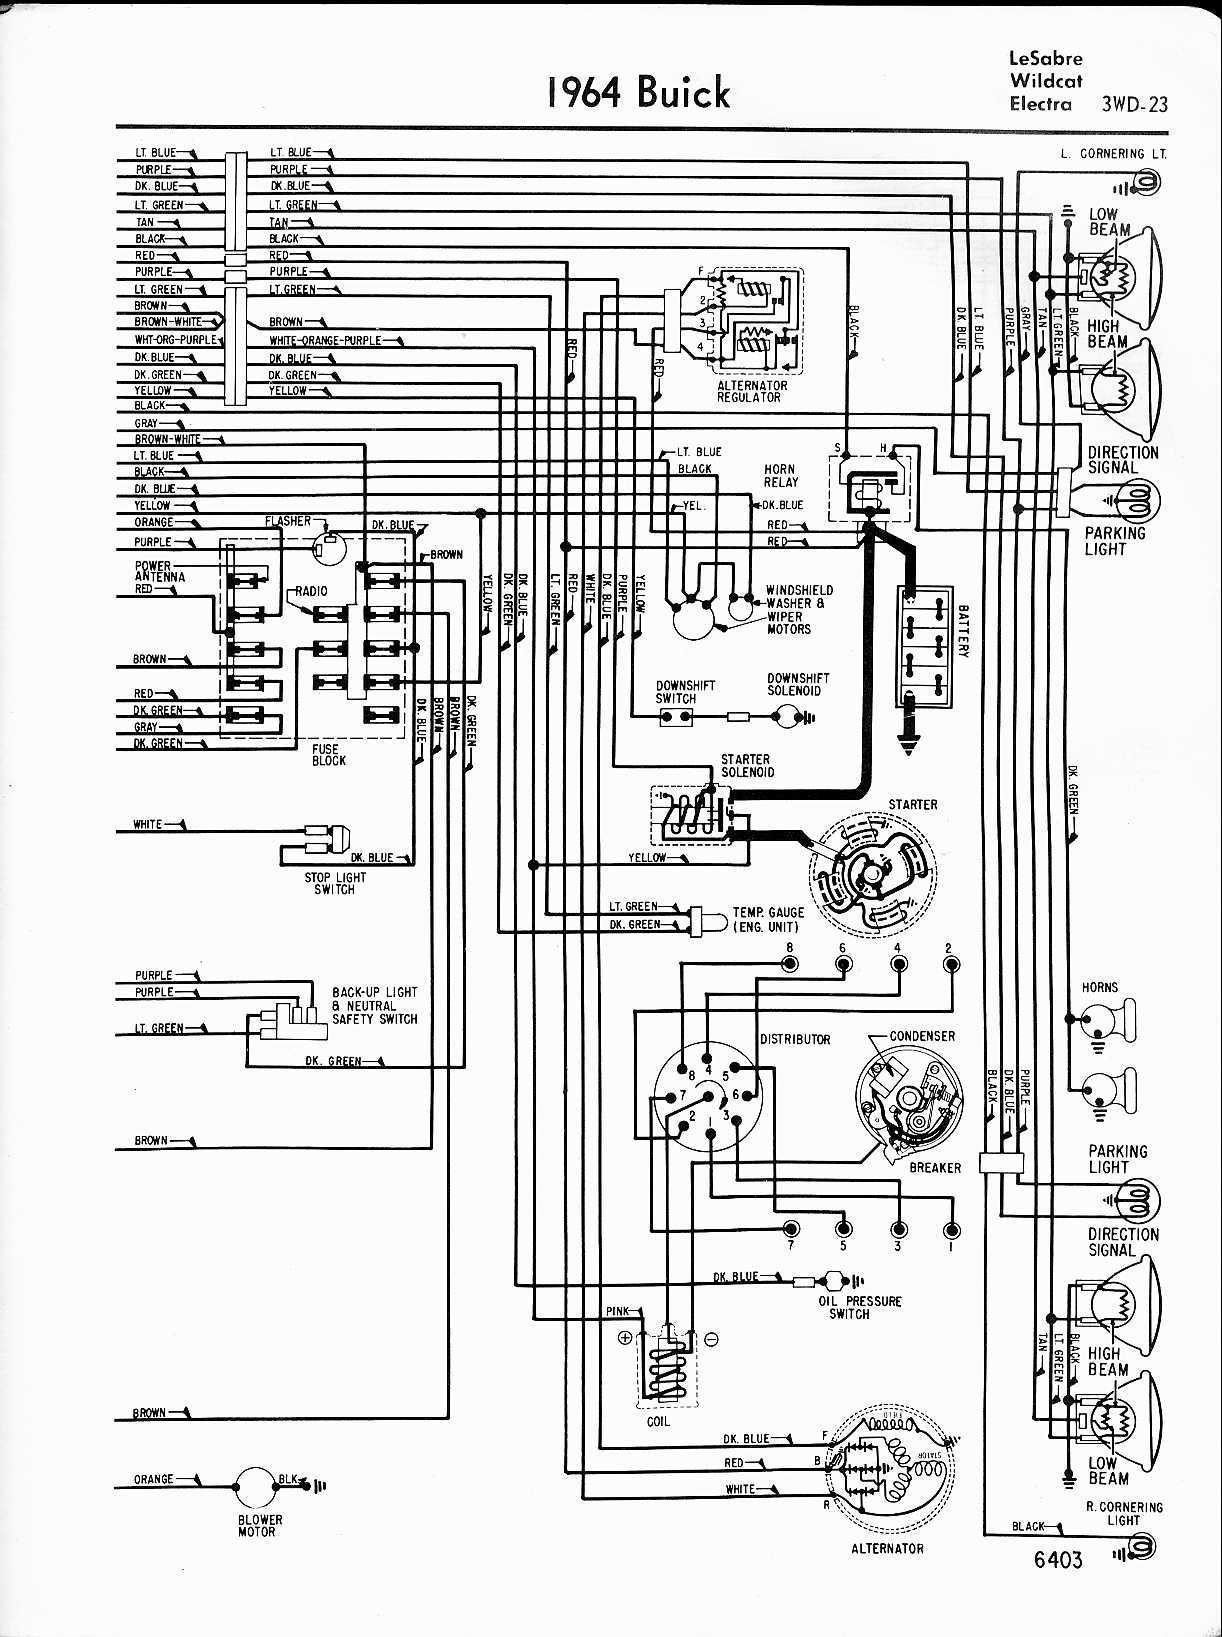 2007 Buick Rainier Wiring Diagram Opinions About For 2004 Gmc Envoy 2006 Engine Worksheet And U2022 Rh Bookinc Co Chevrolet Trailblazer